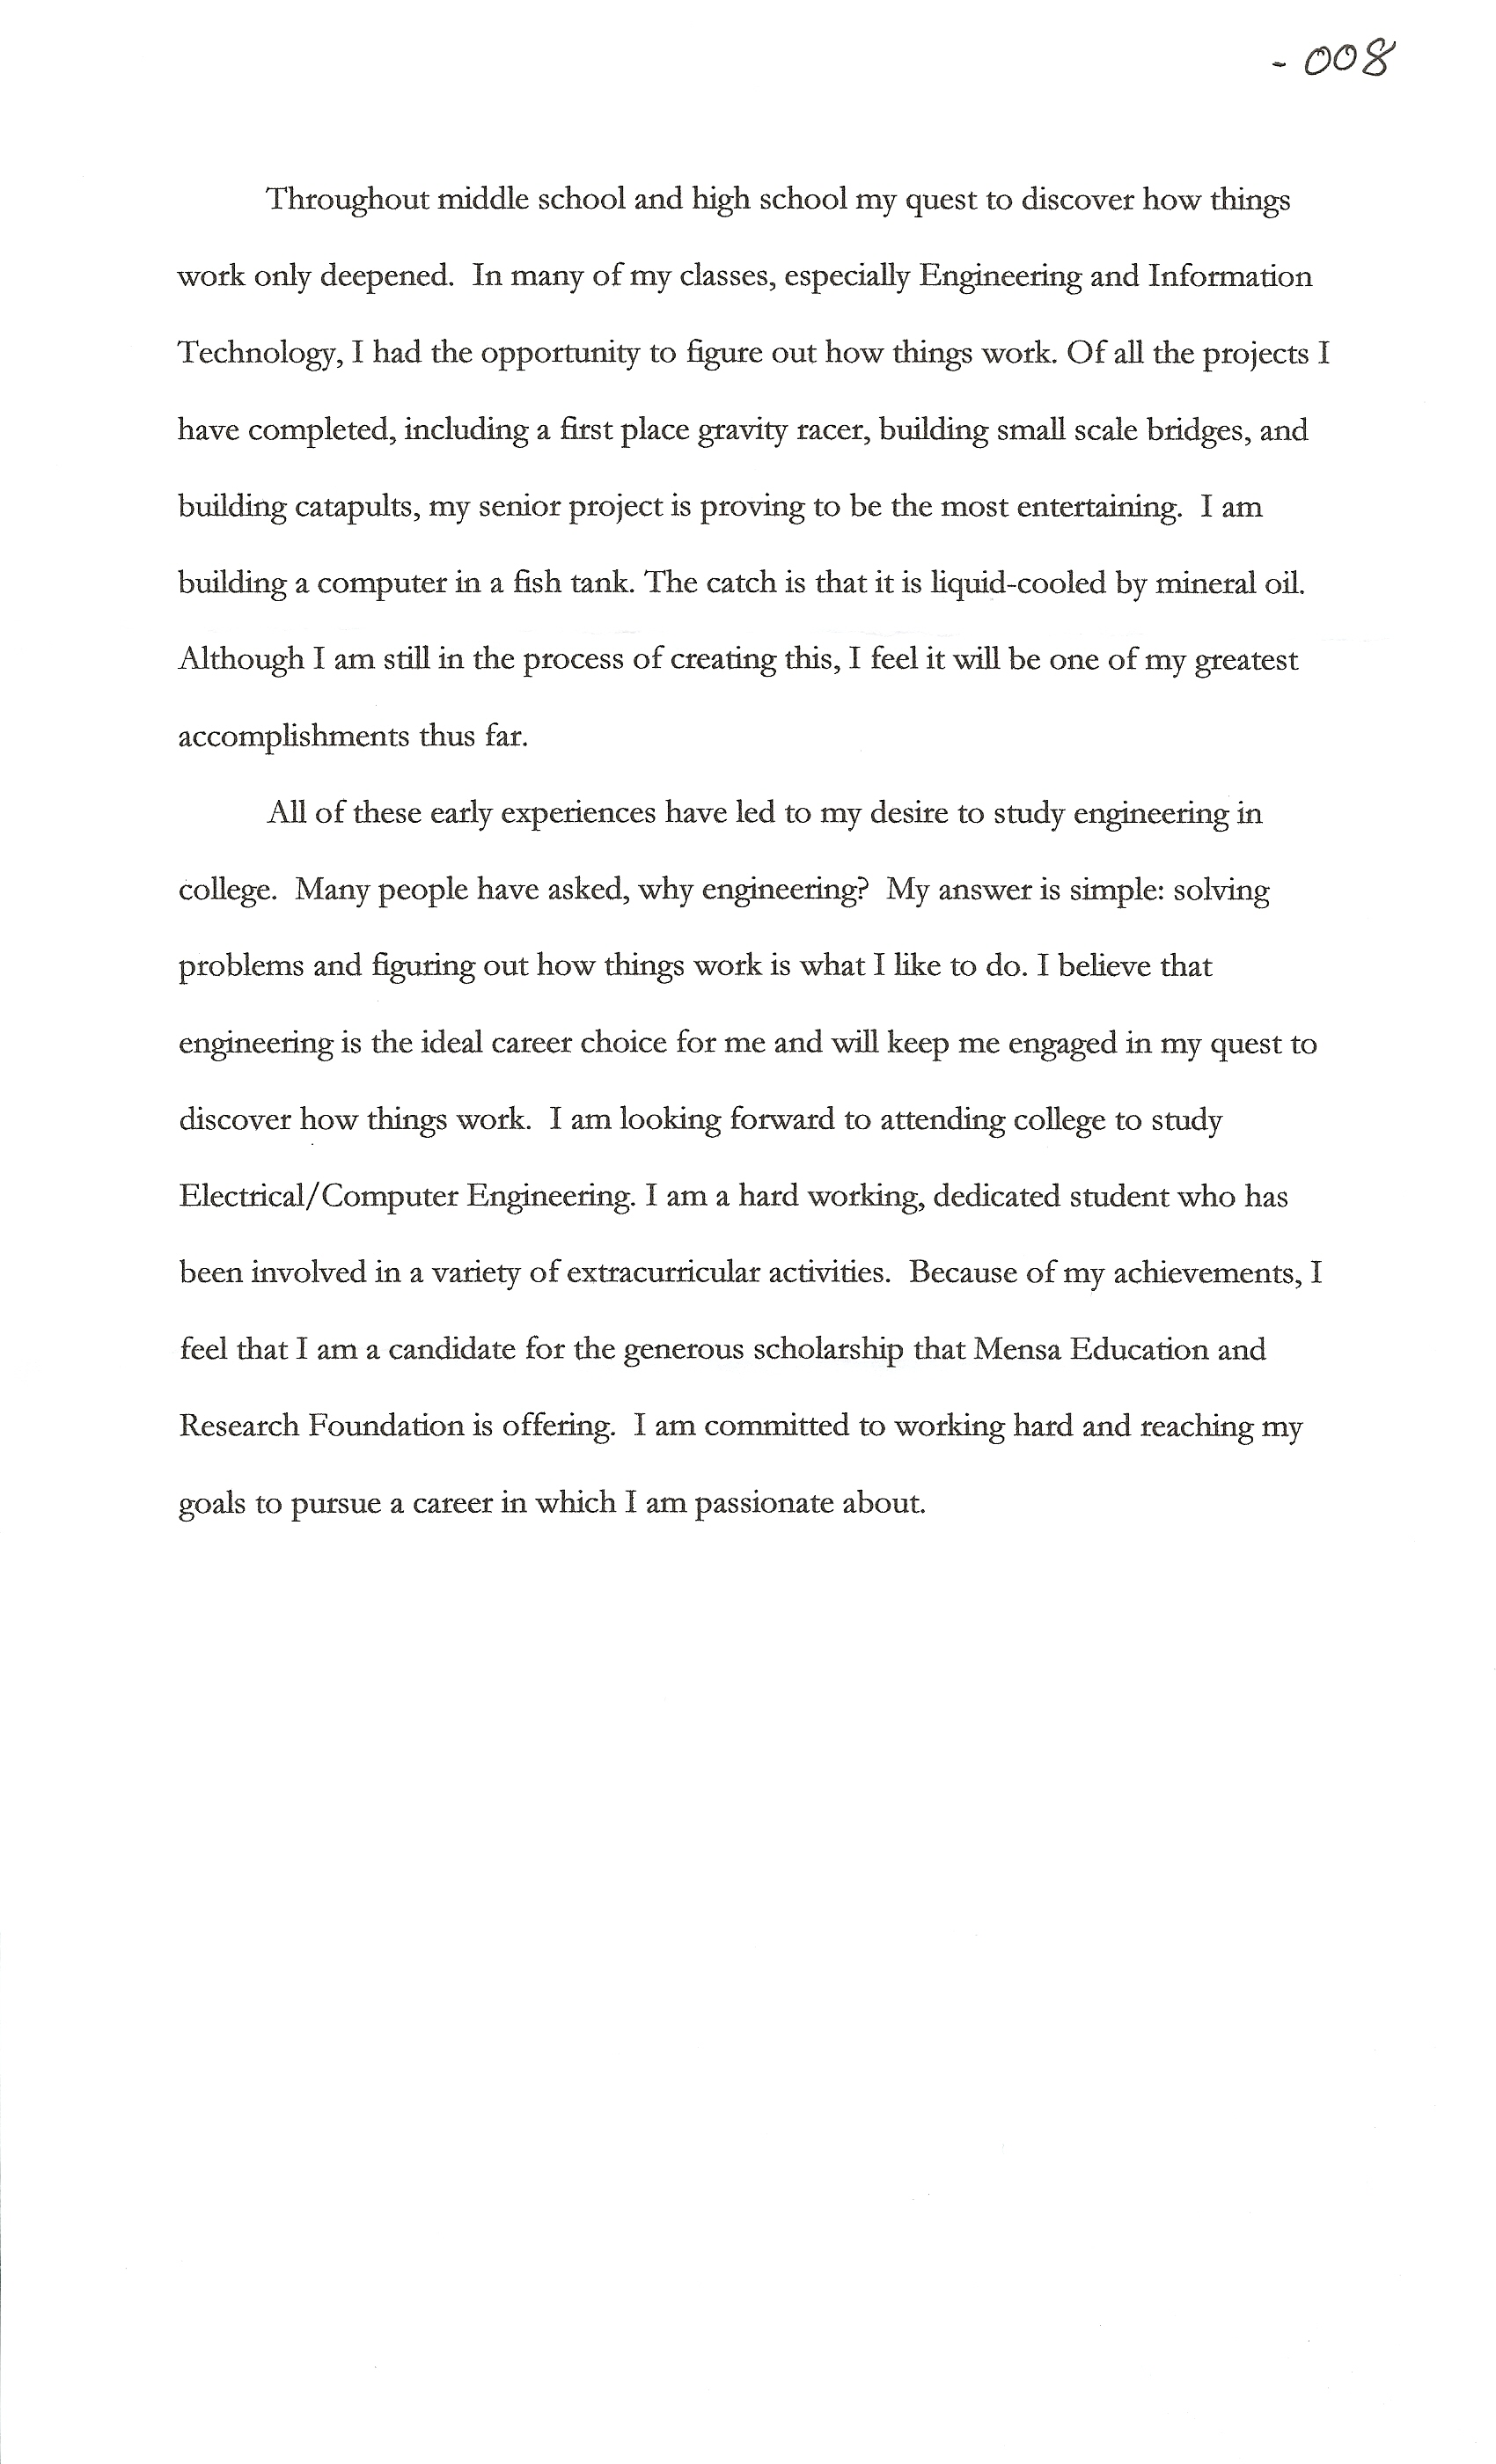 004 Essay On Career Example Joshua Cate Breathtaking Goals And Aspirations Sample Choosing A Path Full